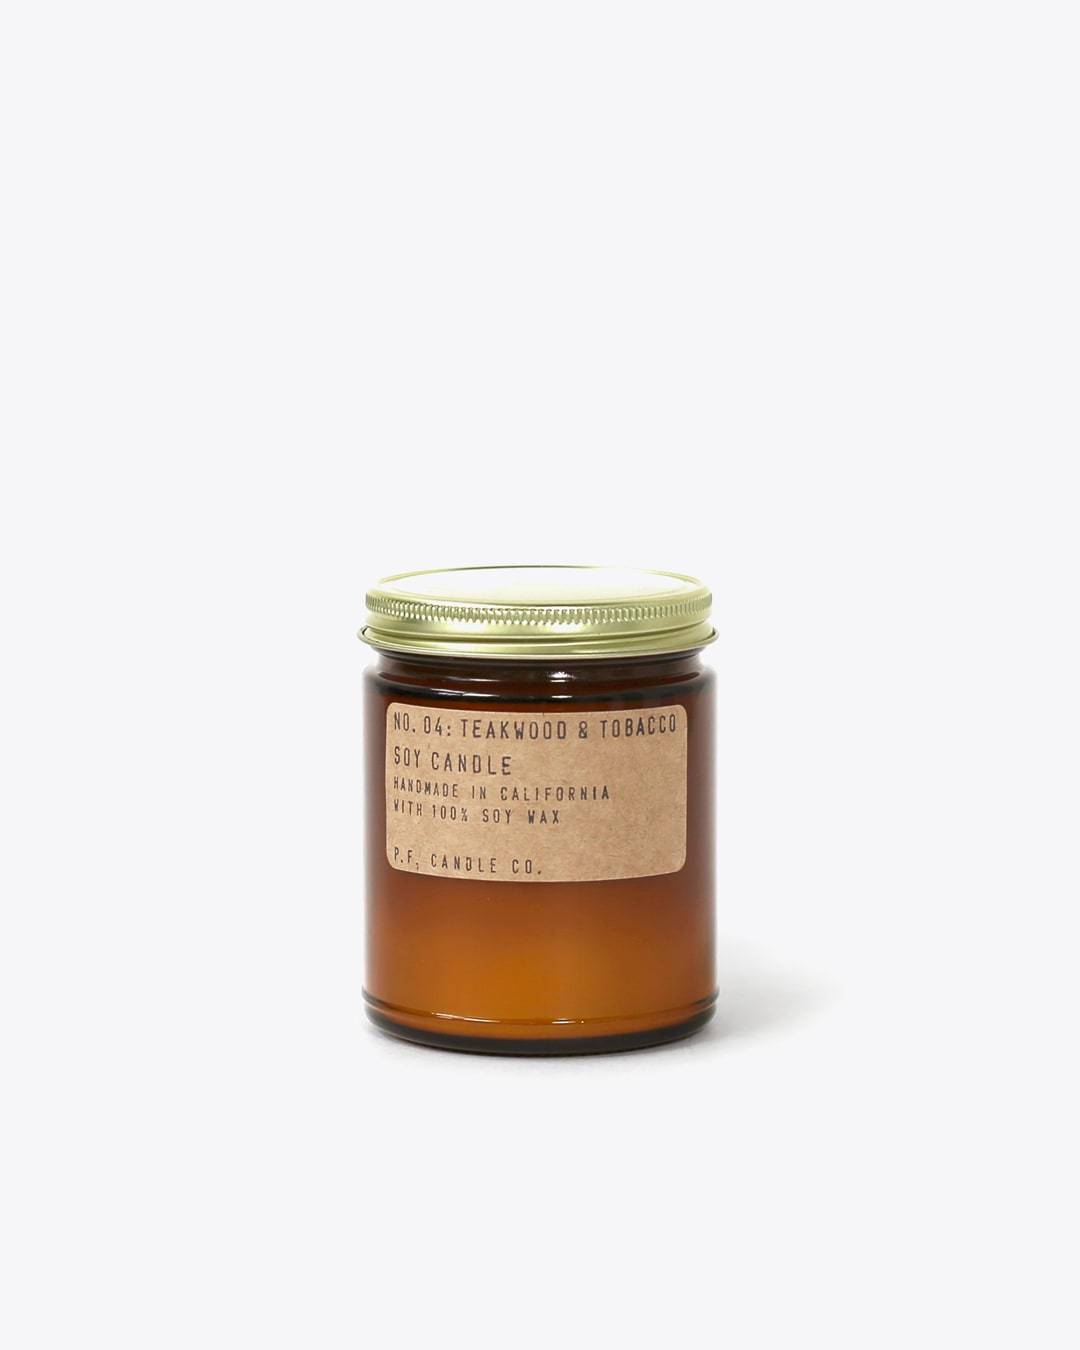 P.F. Candle Co. Standard Candle Teakwood + Tobacco P.F. Candle Co.